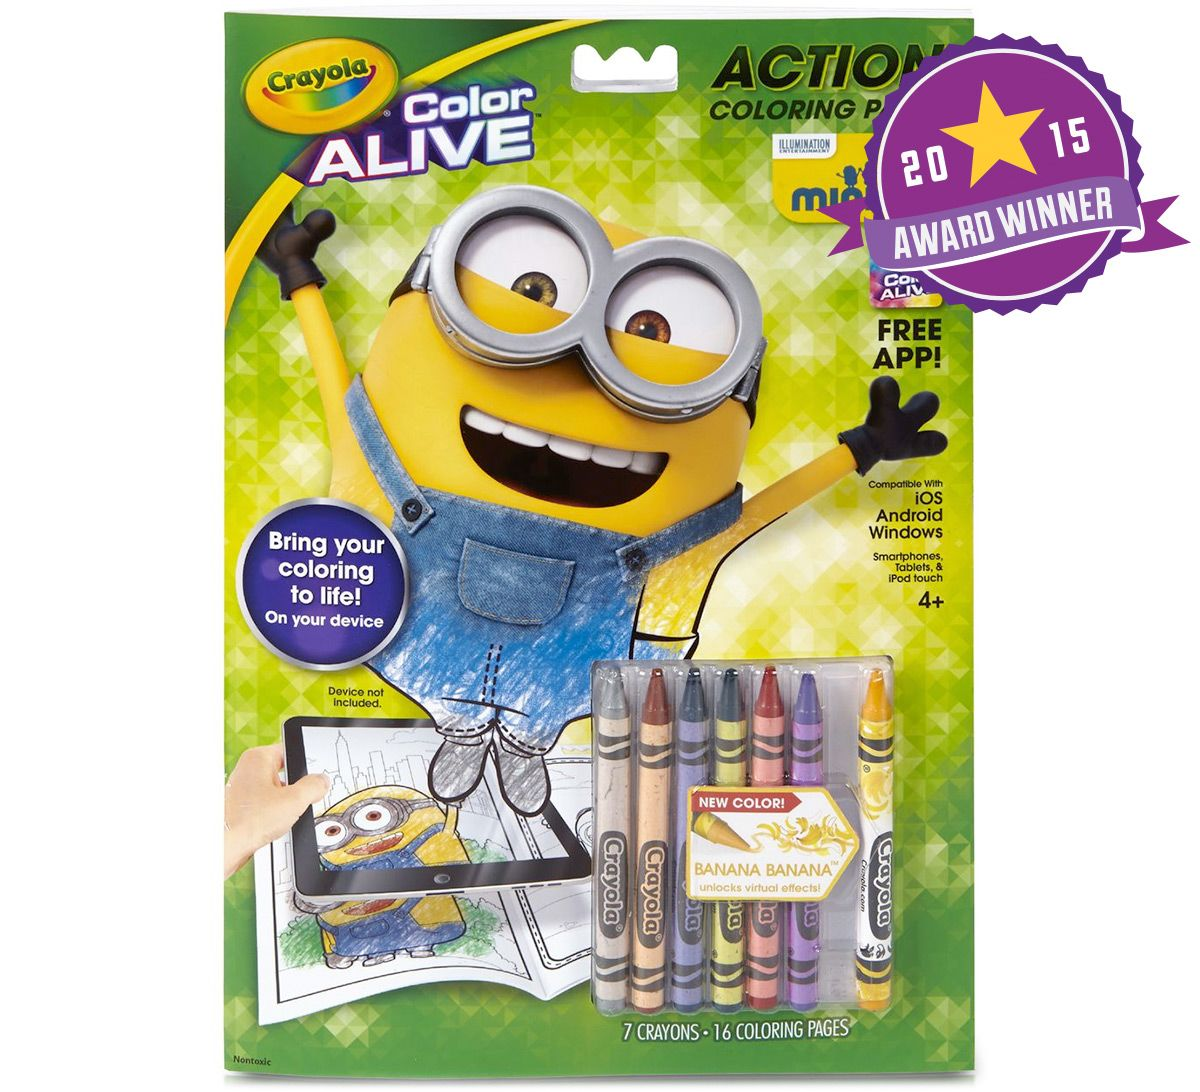 The crayon blog new crayola colors for 2015 with their for Crayola color alive coloring pages